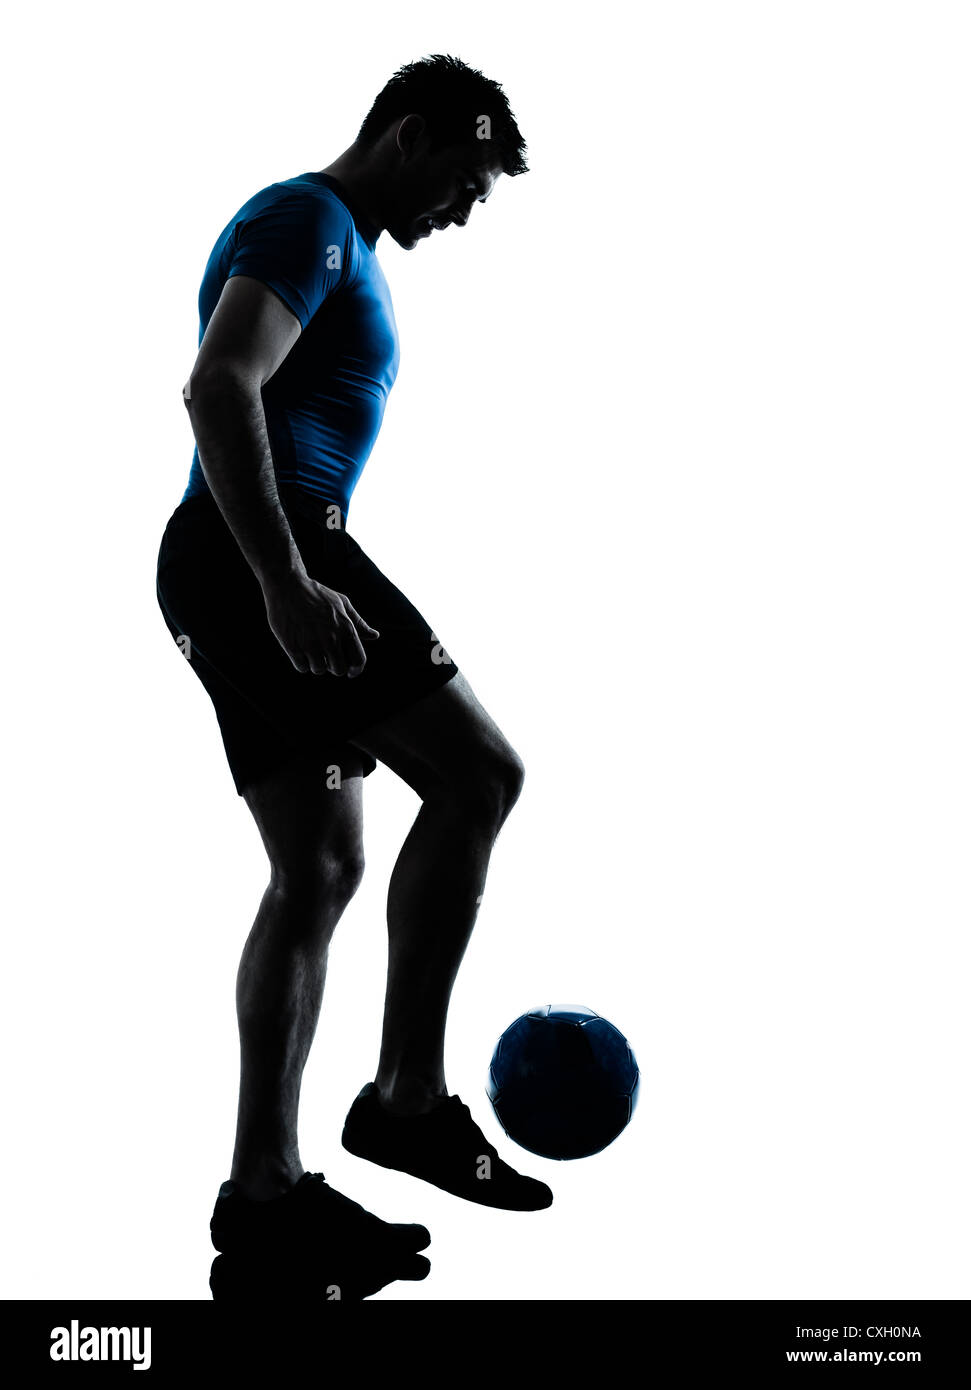 one caucasian man playing soccer juggling football player silhouette  in studio isolated on white background - Stock Image